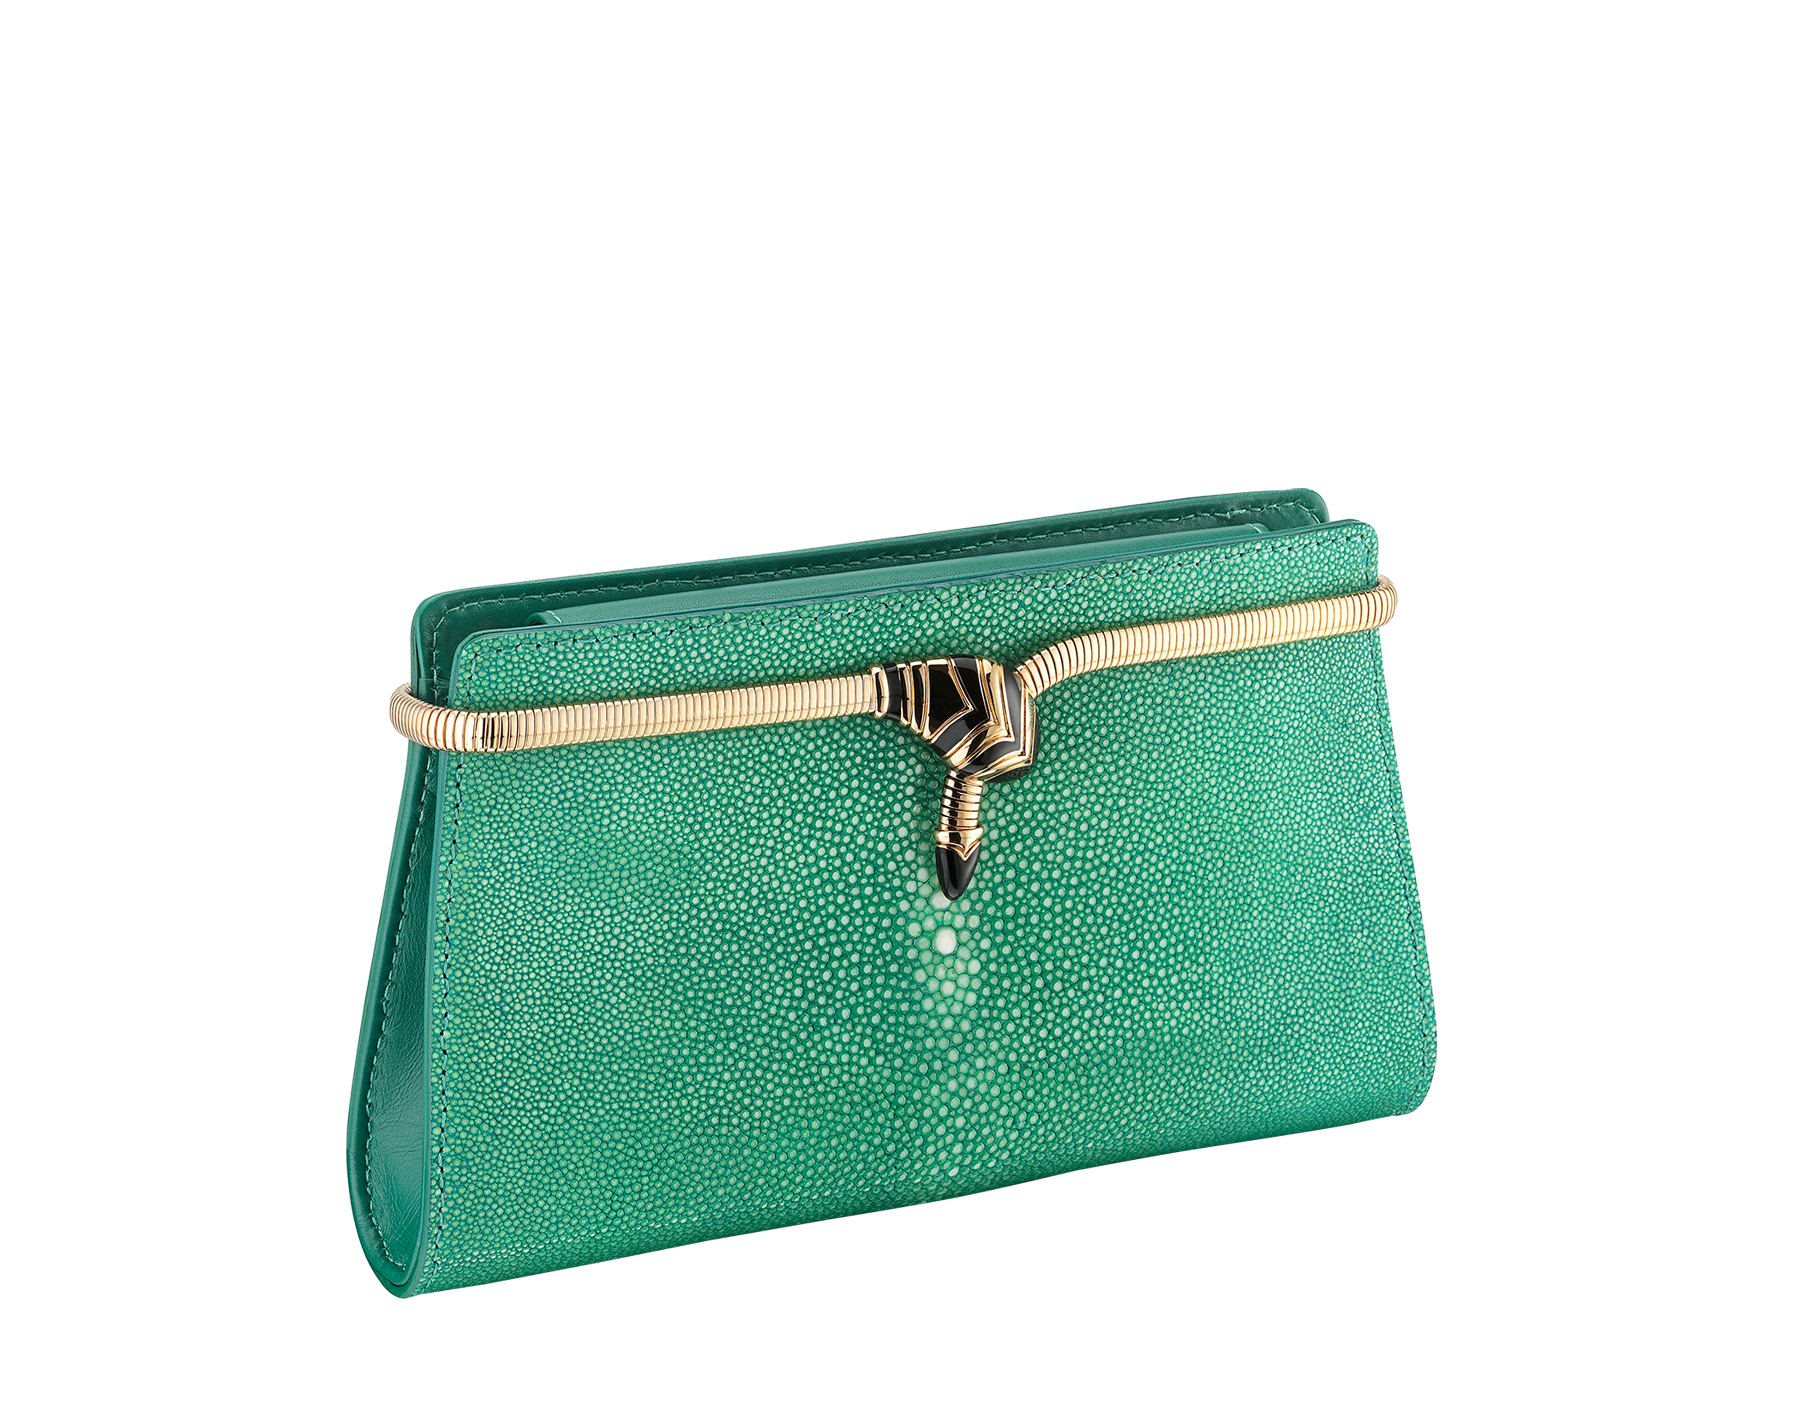 Serpenti Tubogas clutch in green galuchat skin with brass light pink gold plated snake body shaped frame closure with black enamel. 526-001-0671S image 2